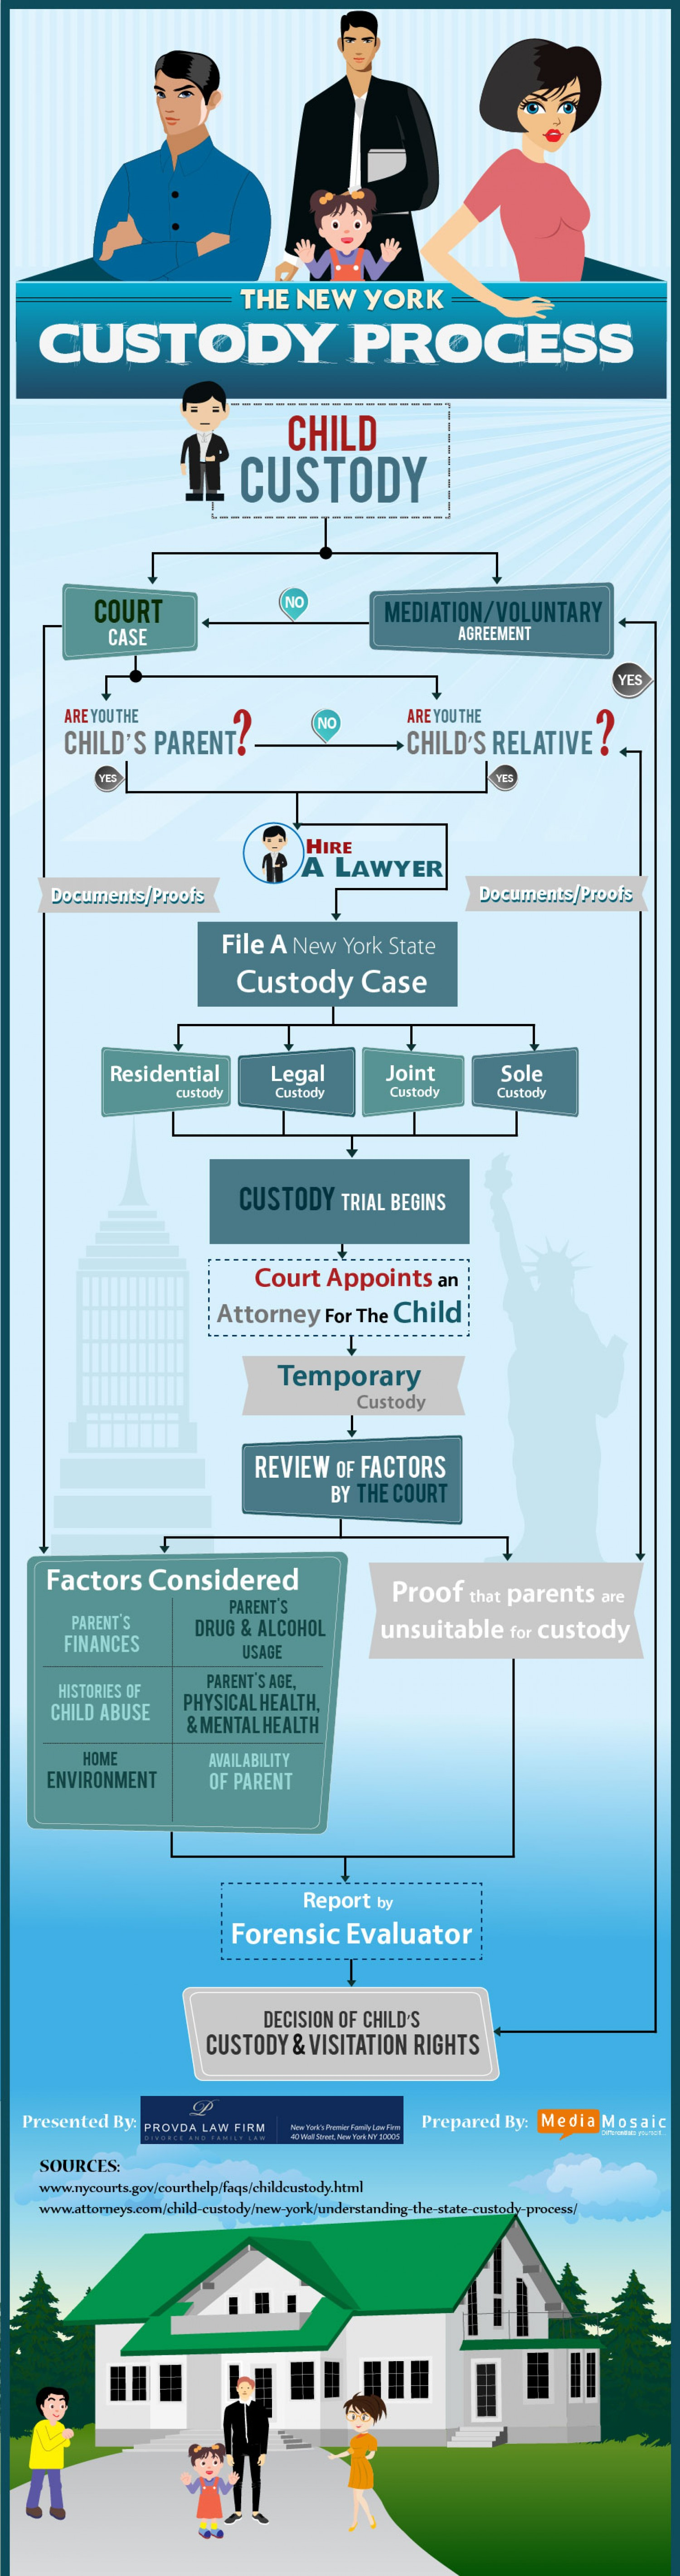 18. Requirements of Child Custody